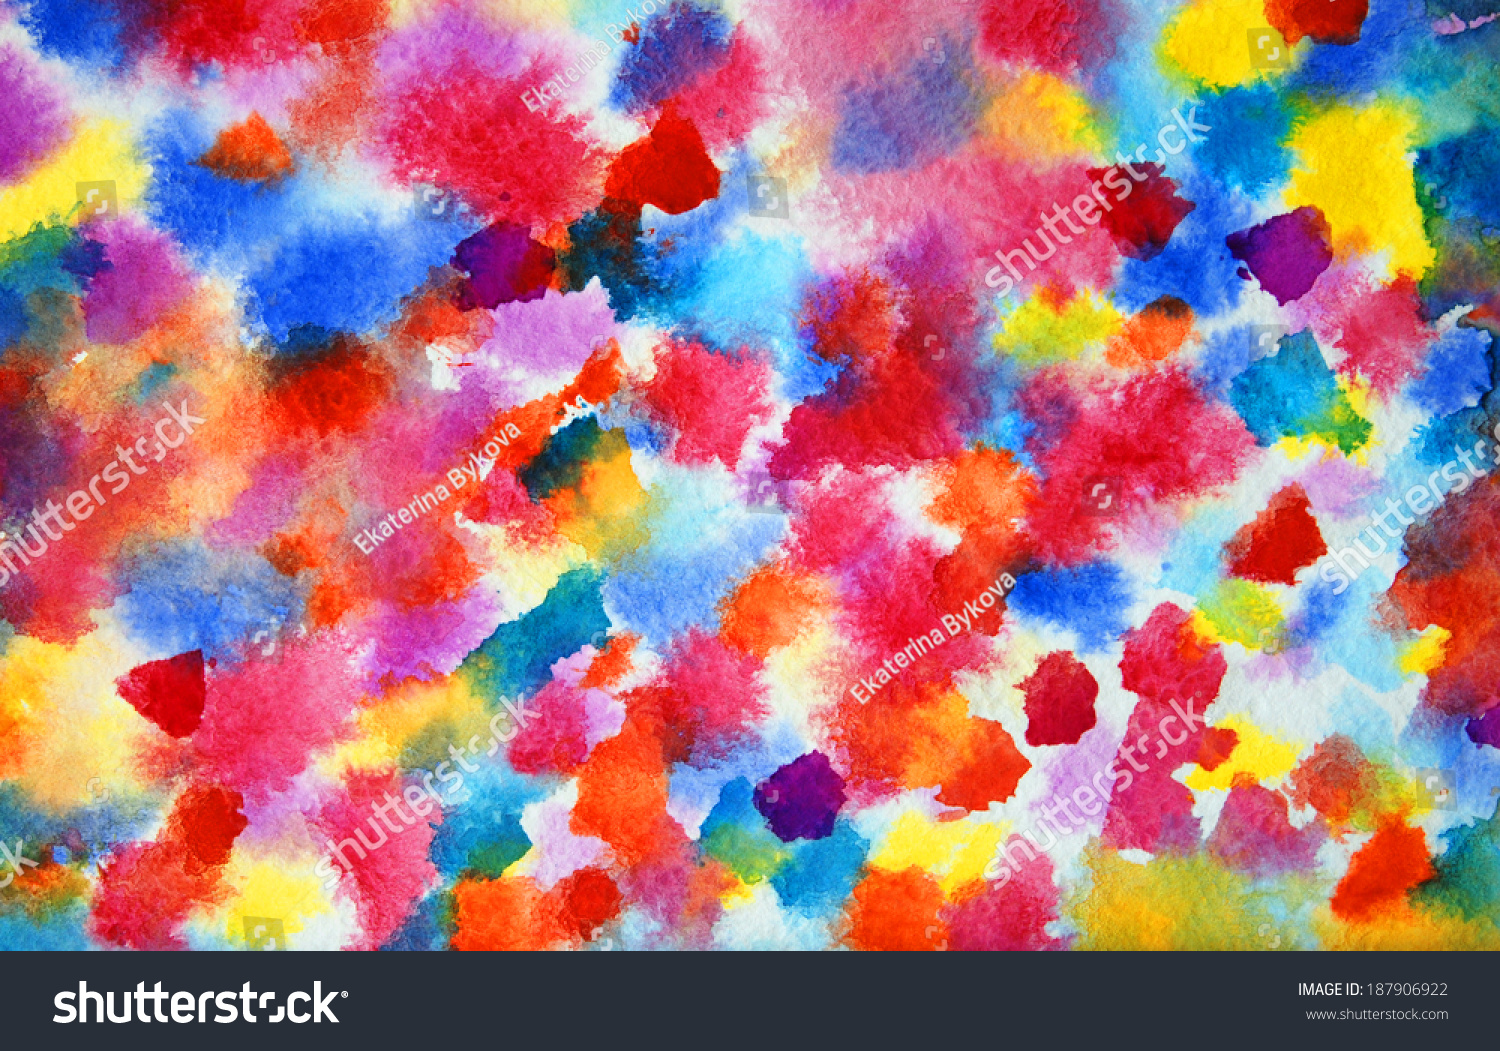 Abstract colorful watercolor painting horizontal for Silverleaf com